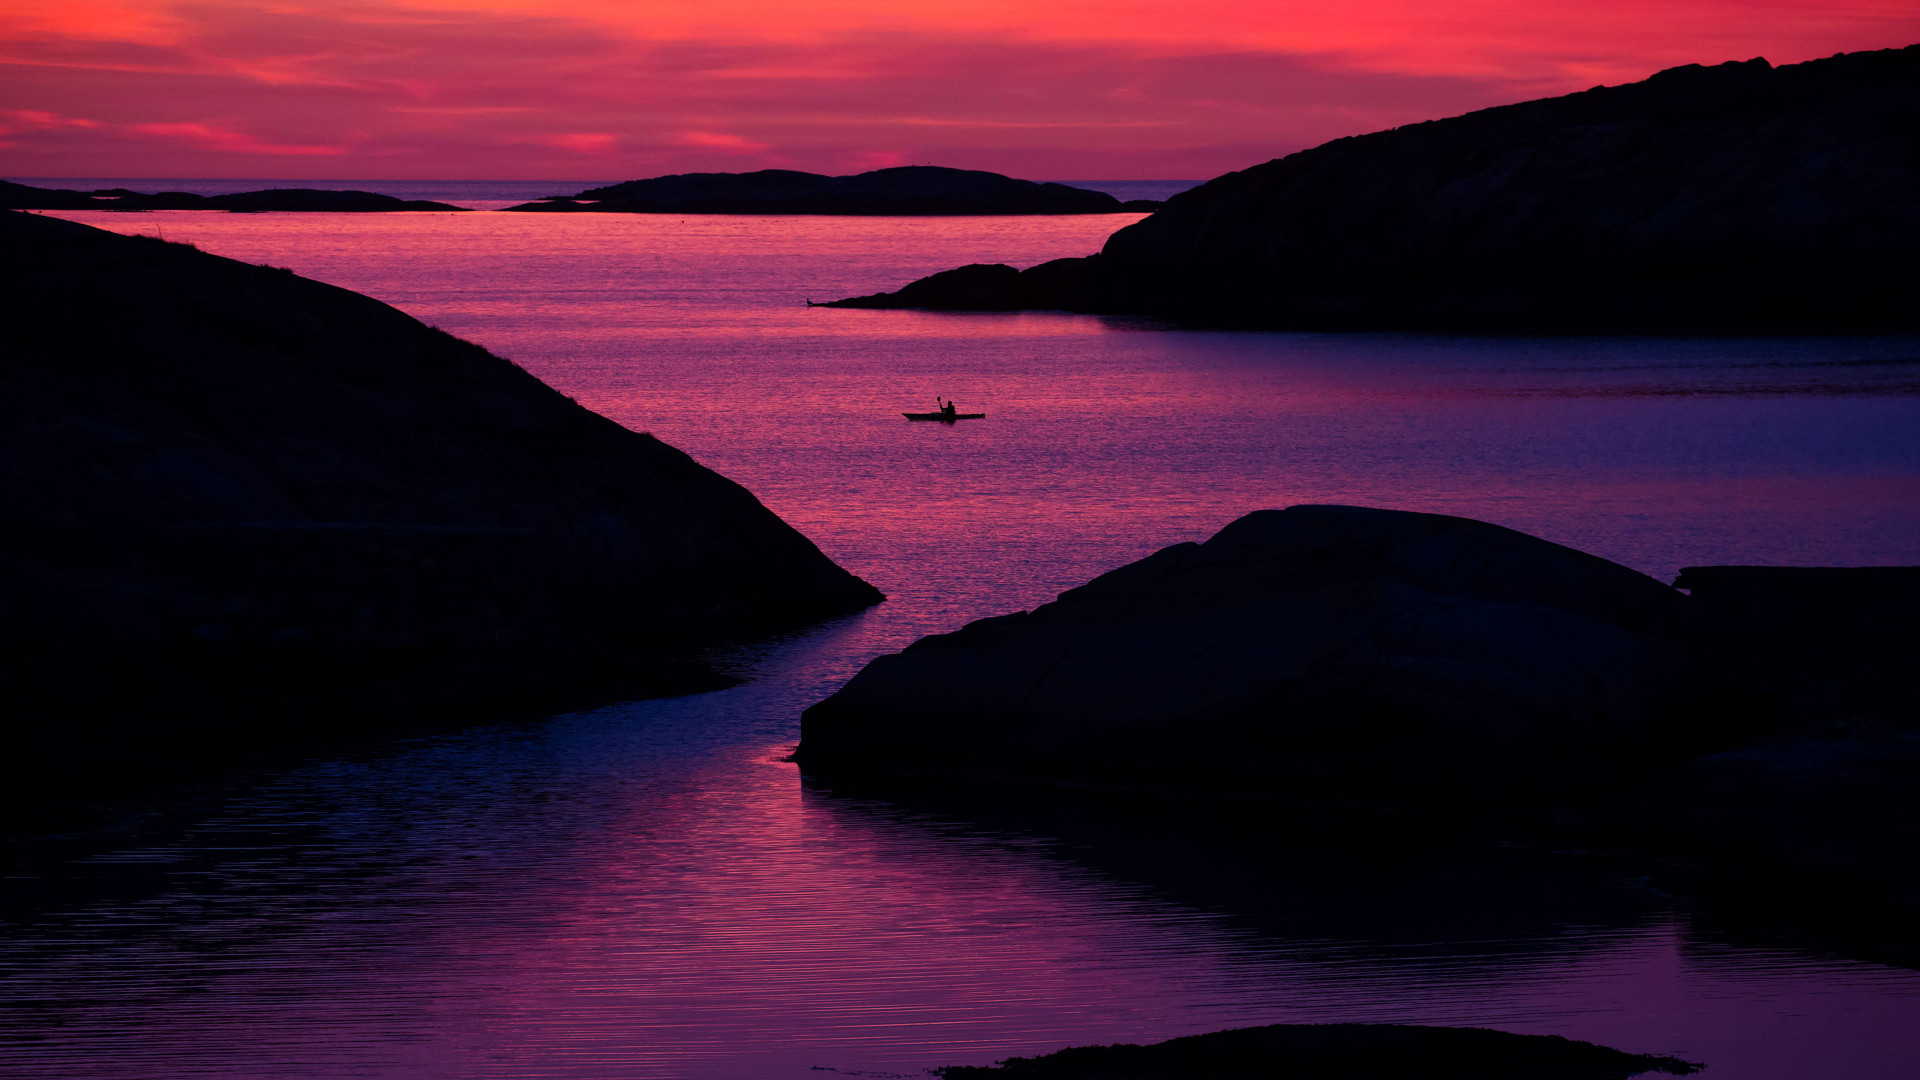 Weather Islands kayaking at Sunset, West Sweden